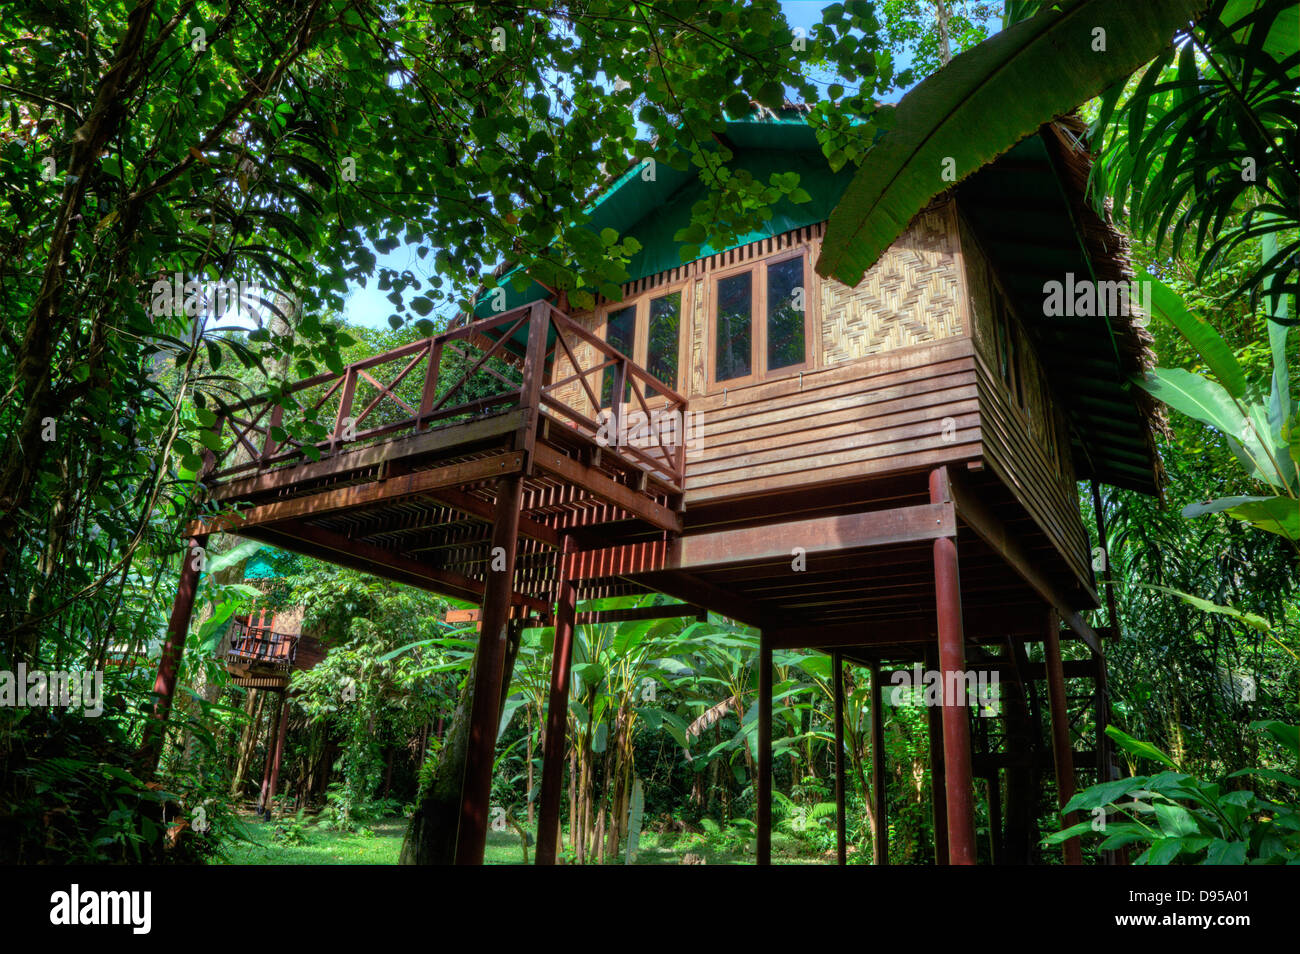 Uncategorized Houses In The Jungle tree houses are the specialty of our jungle house a lodge in rainforest near khao sok national park surathani provence th